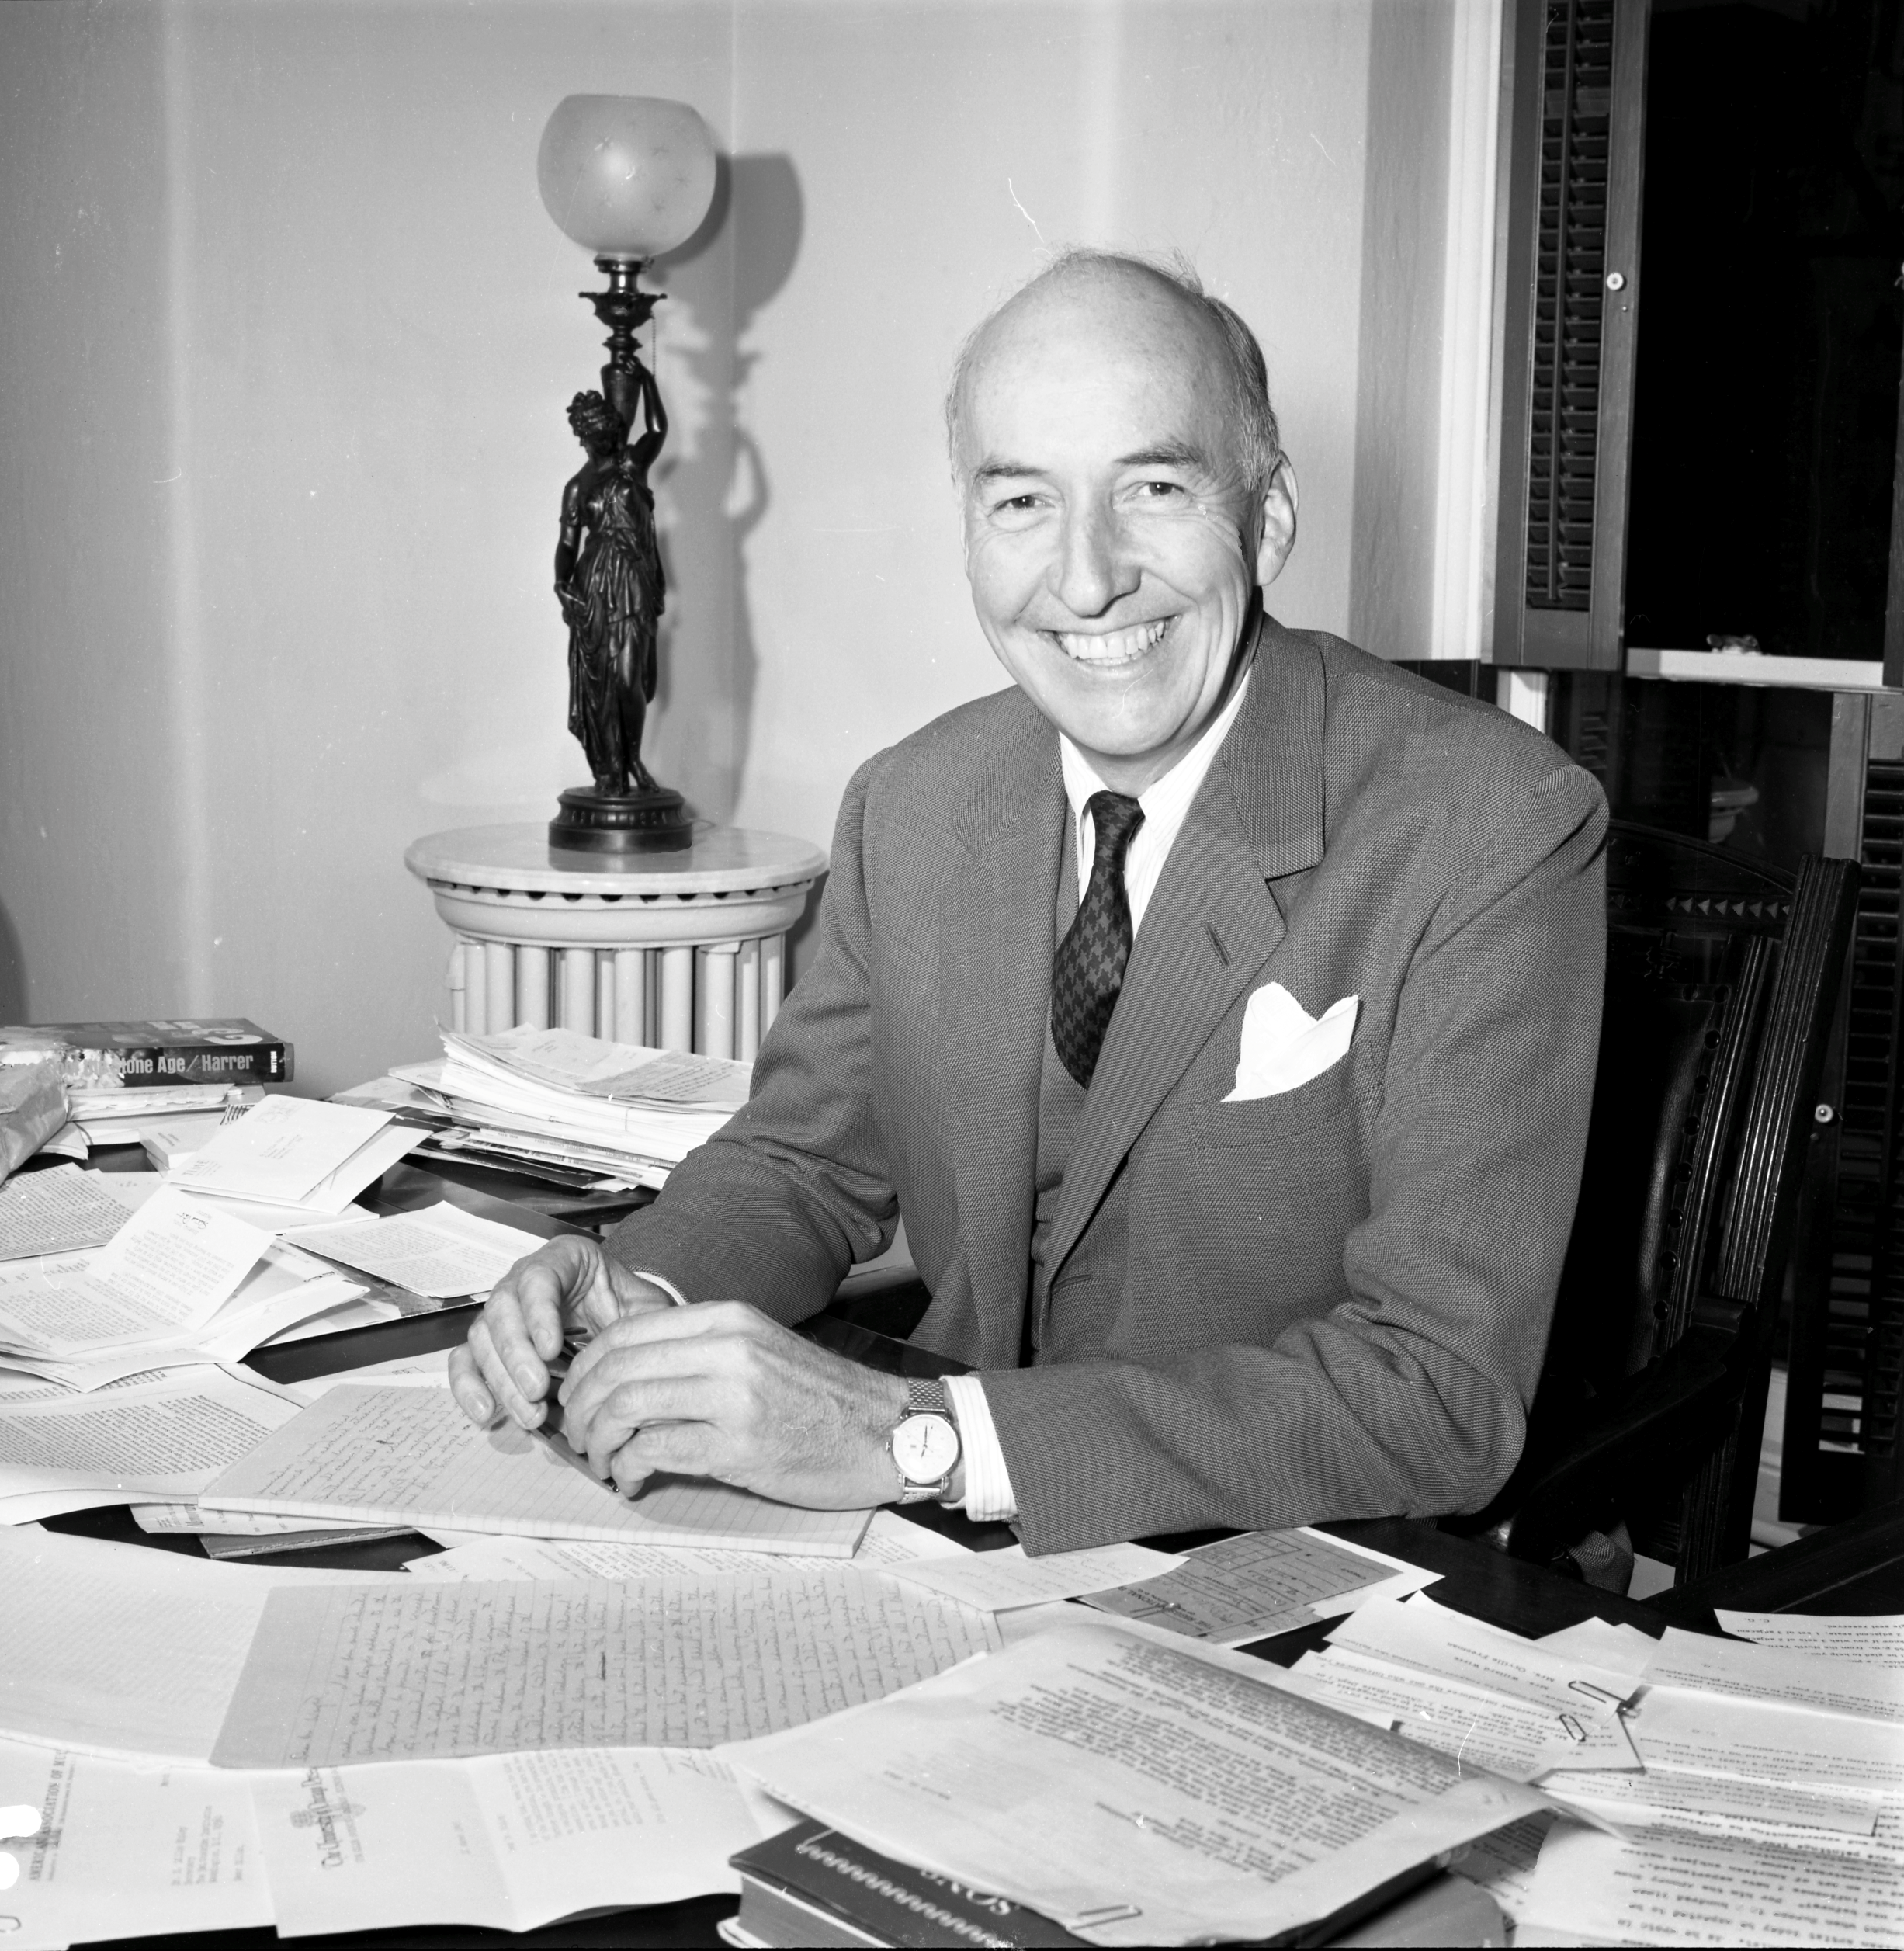 Secretary S. Dillon Ripley at desk.